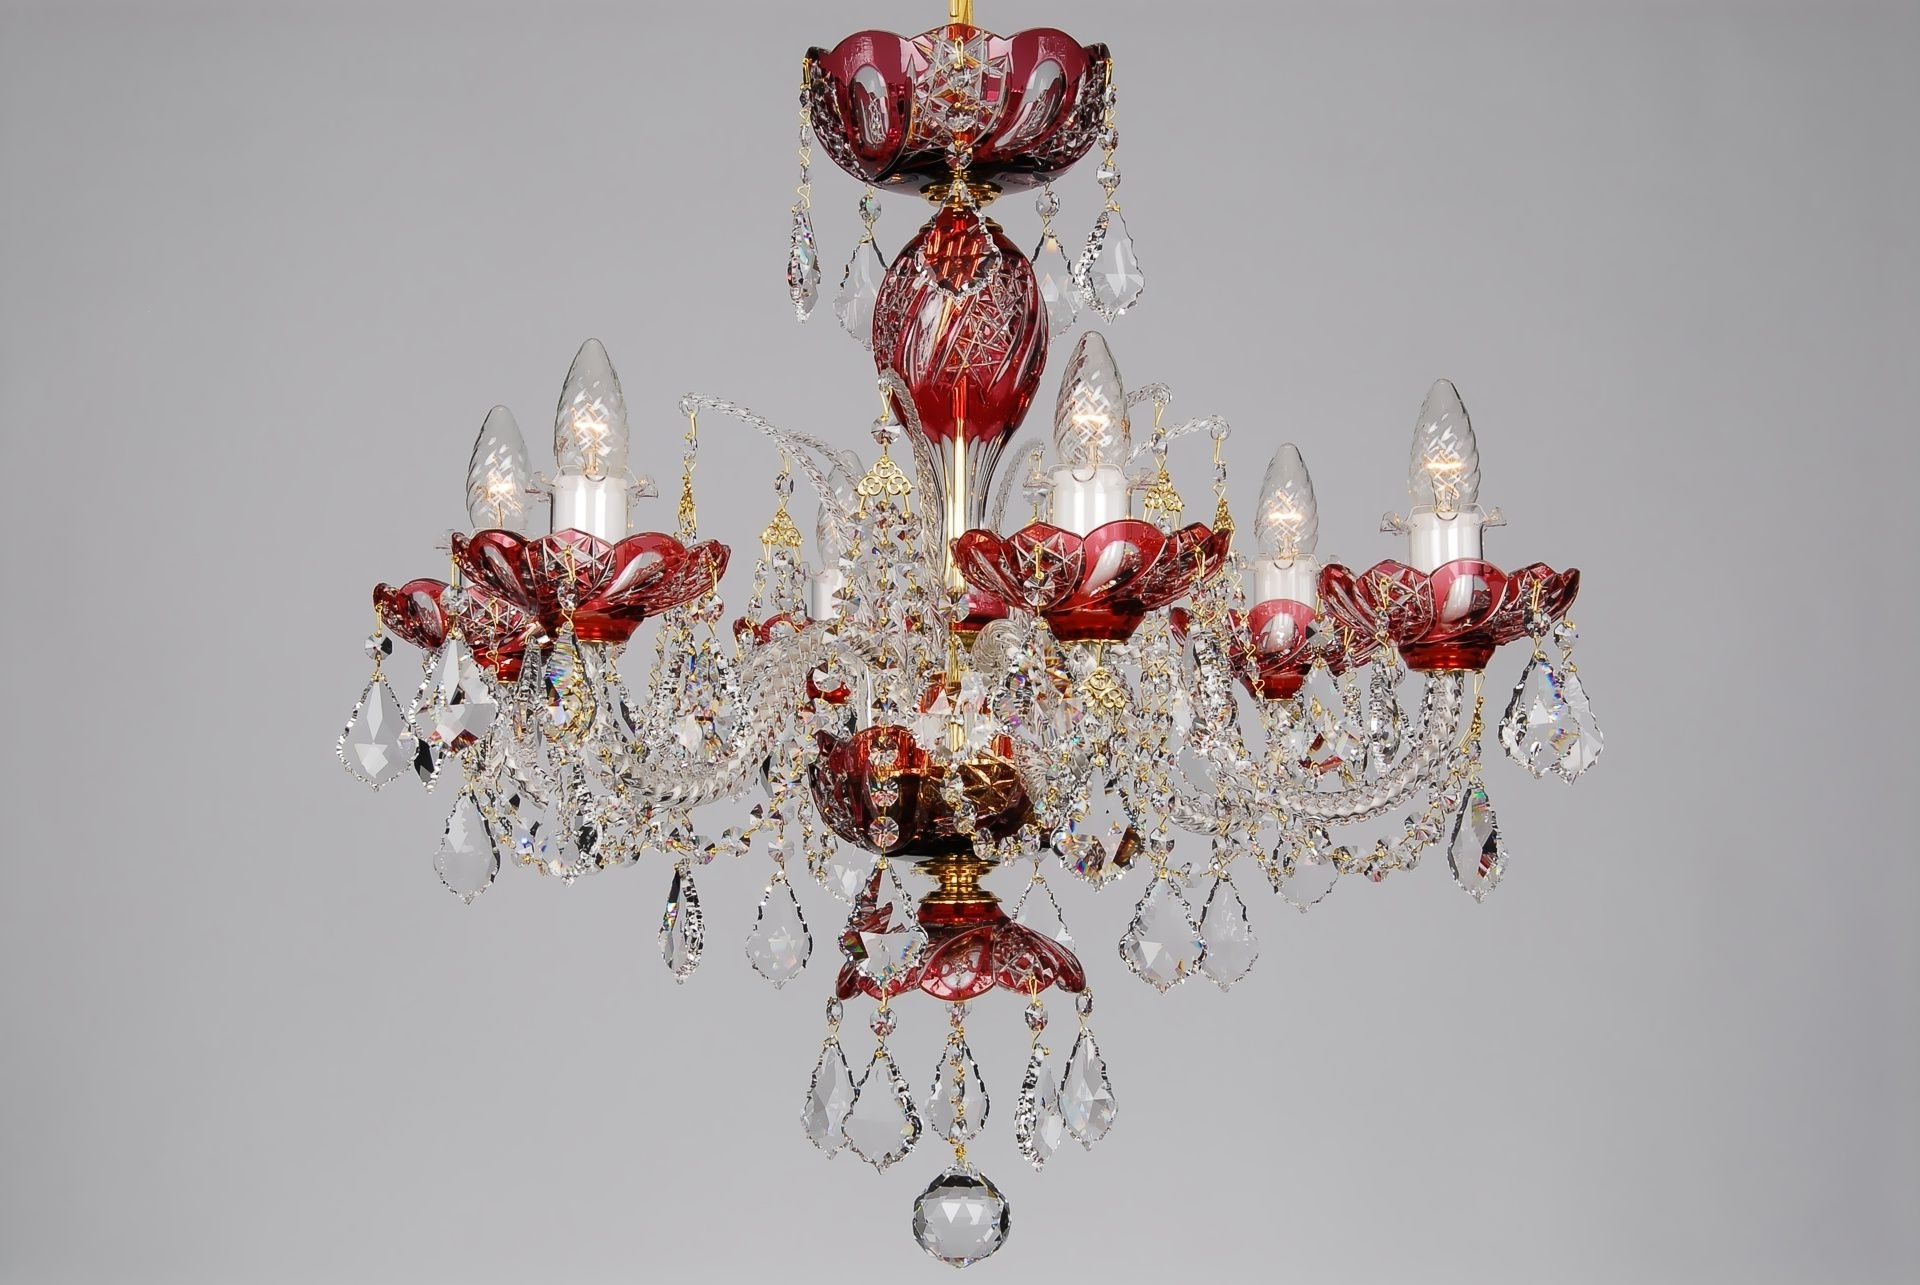 Well Known A Small Red Crystal Chandelier Decorated With Swarovski Trimmings With Regard To Red Chandeliers (View 11 of 15)